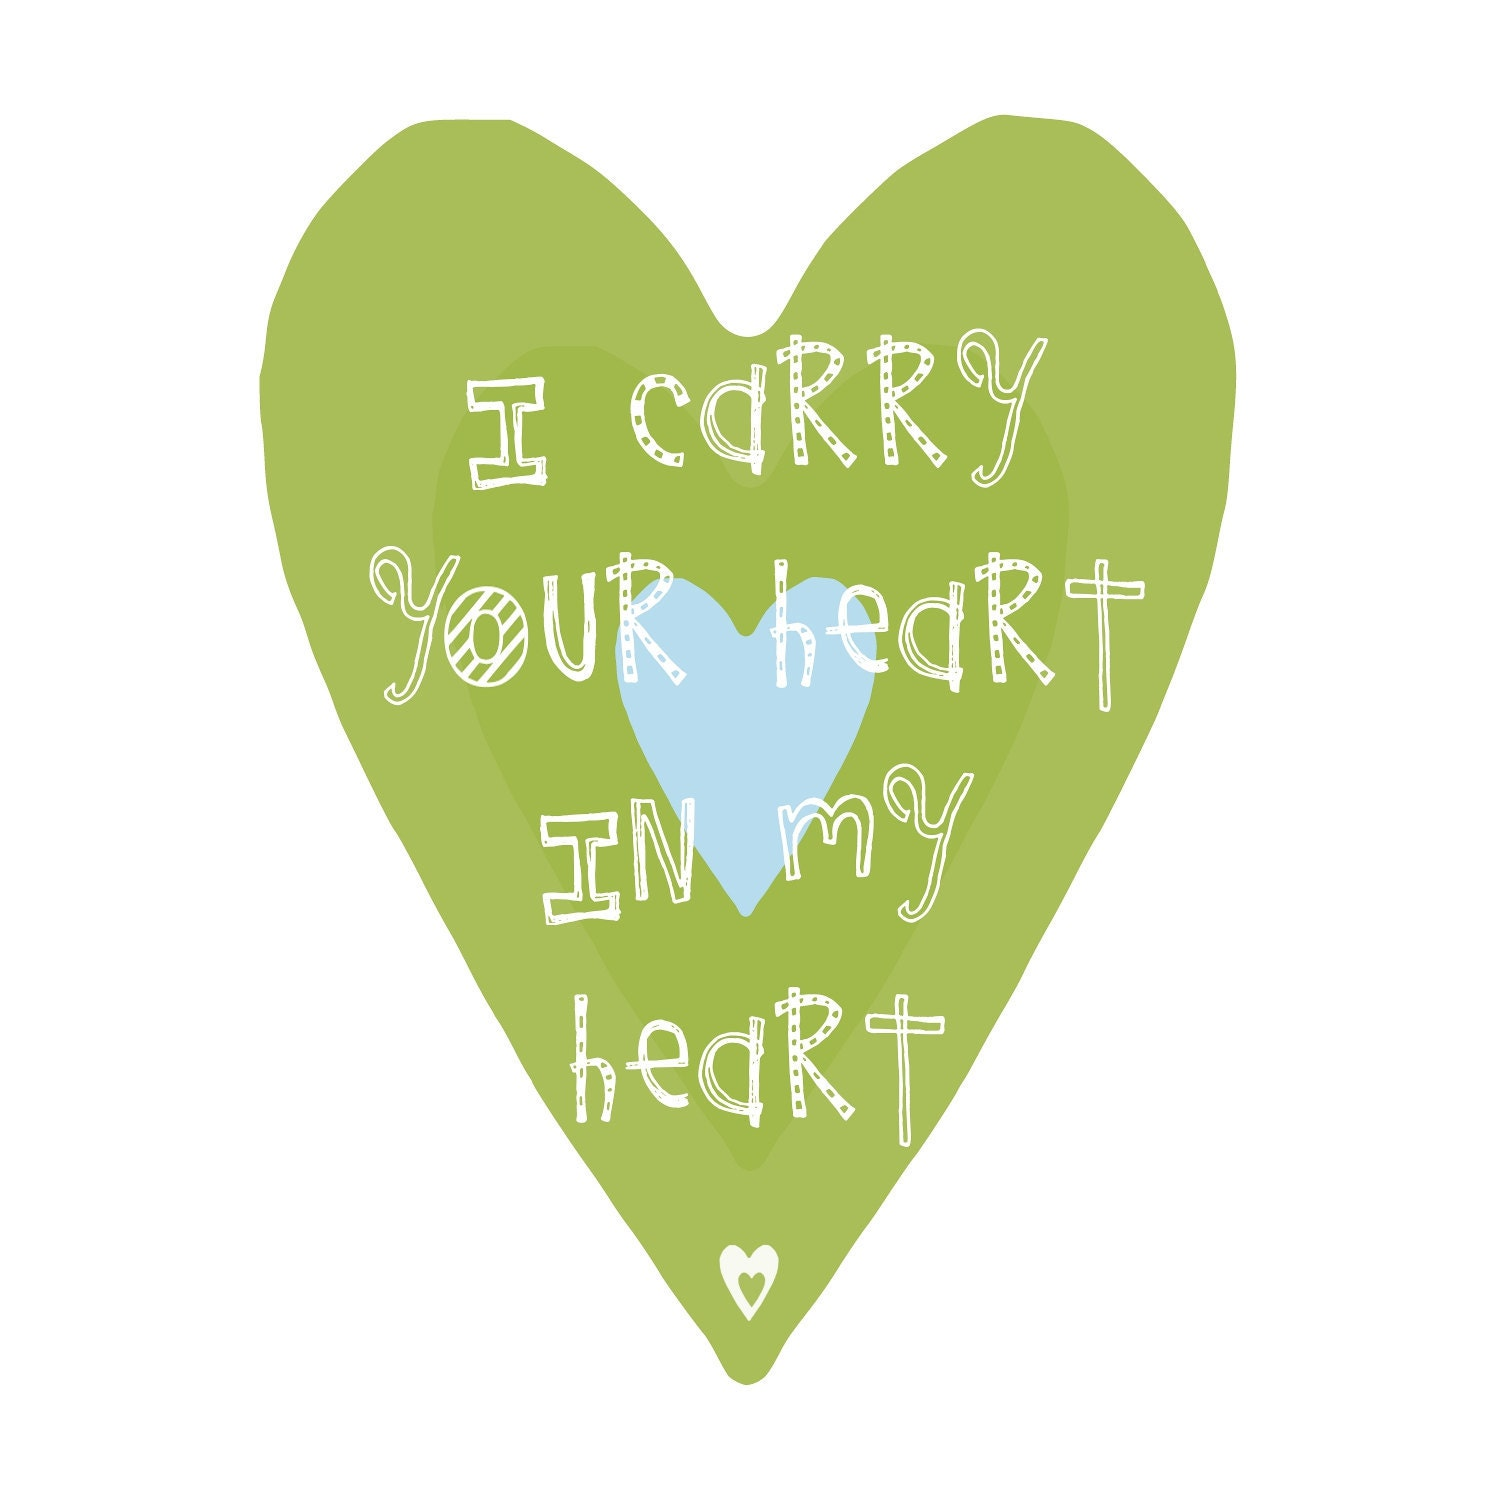 Lime green and Blue Heart Custom Colors - I carry your heart in my heart- Art Print 16x20 in - YassisPlace